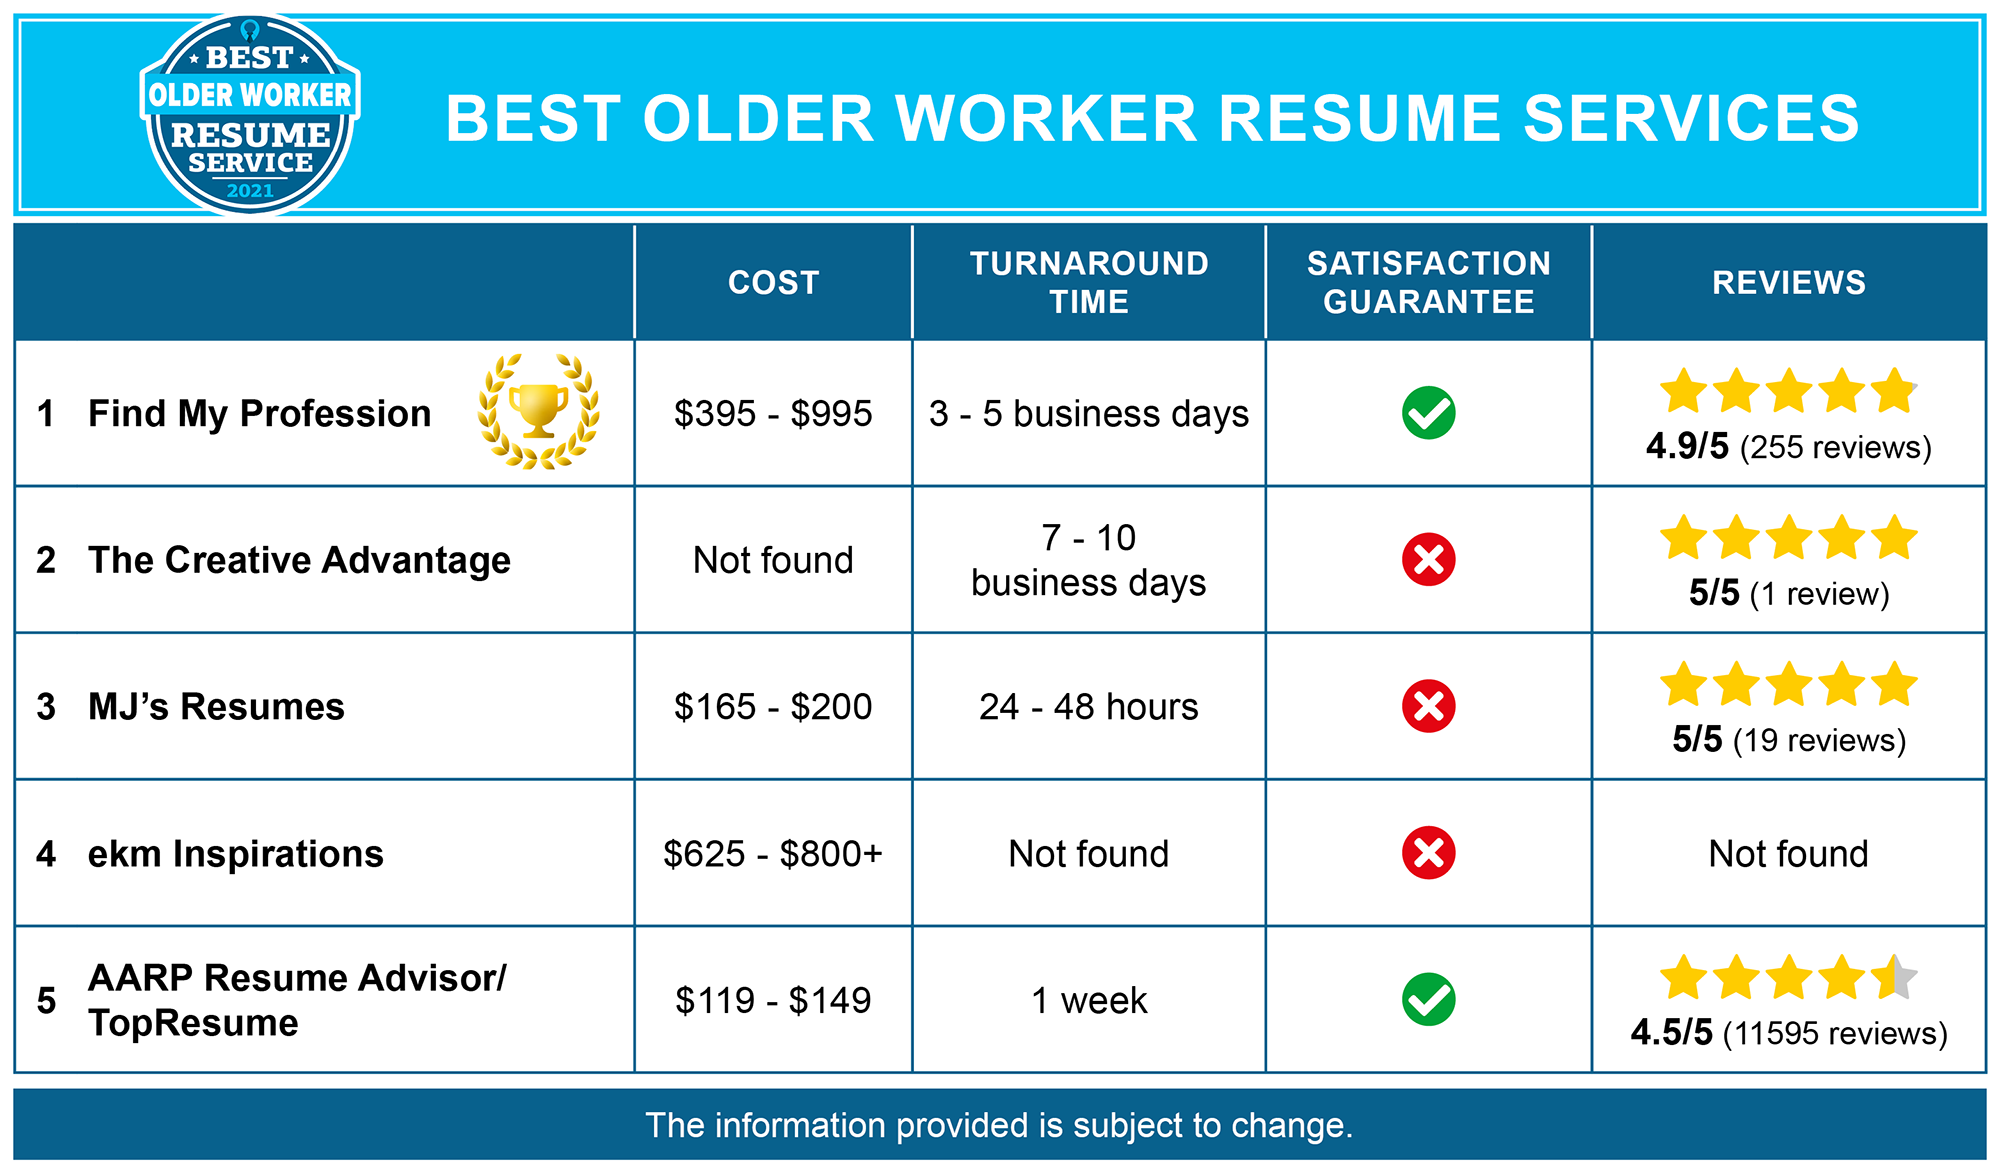 Best Resume Services for Older Workers